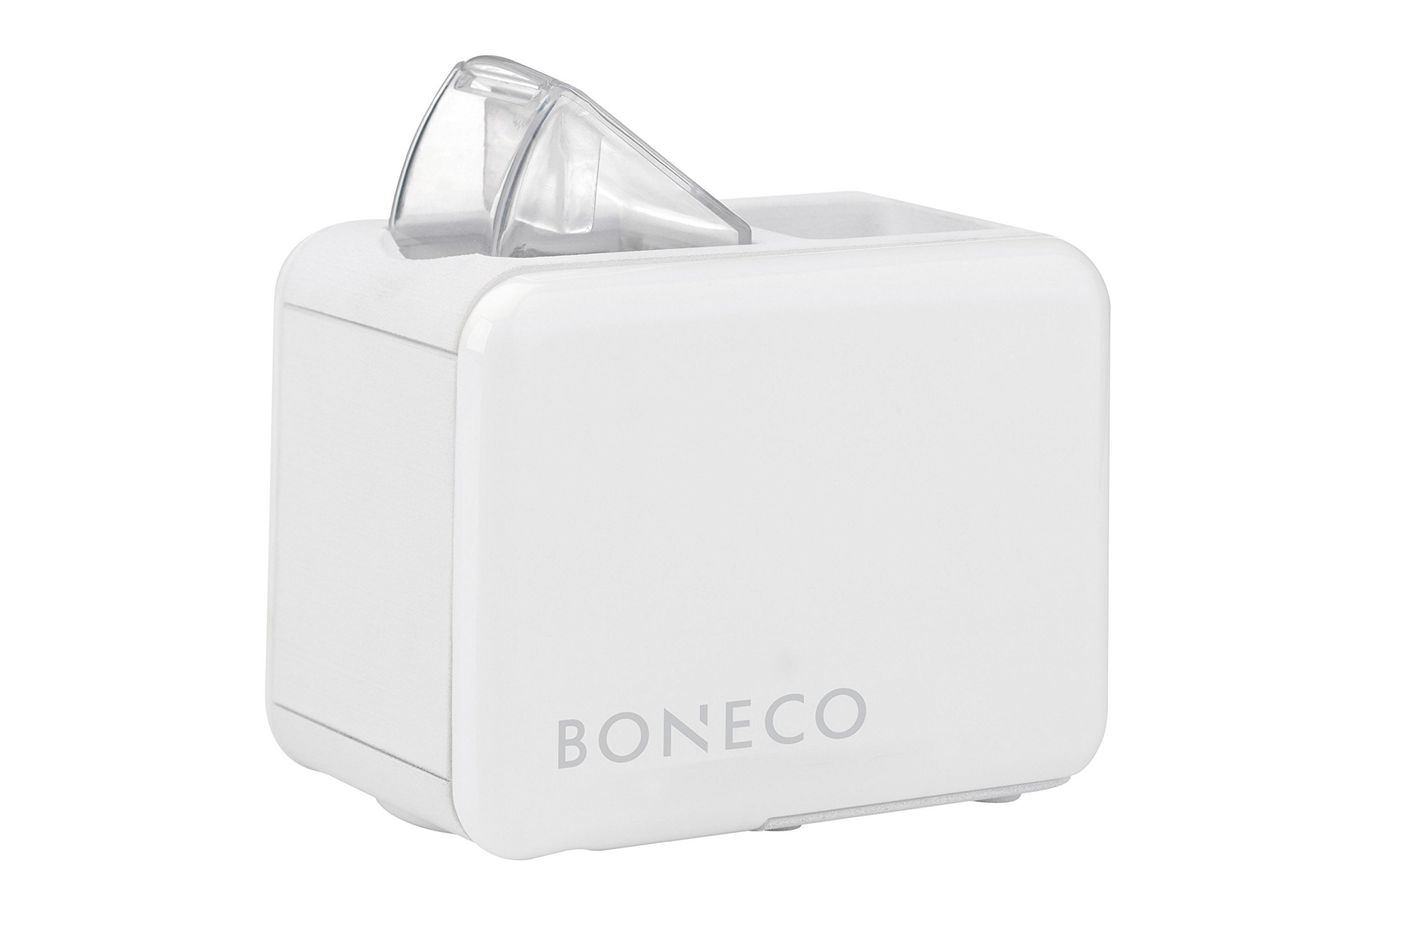 Boneco Travel Cool Mist Humidifier